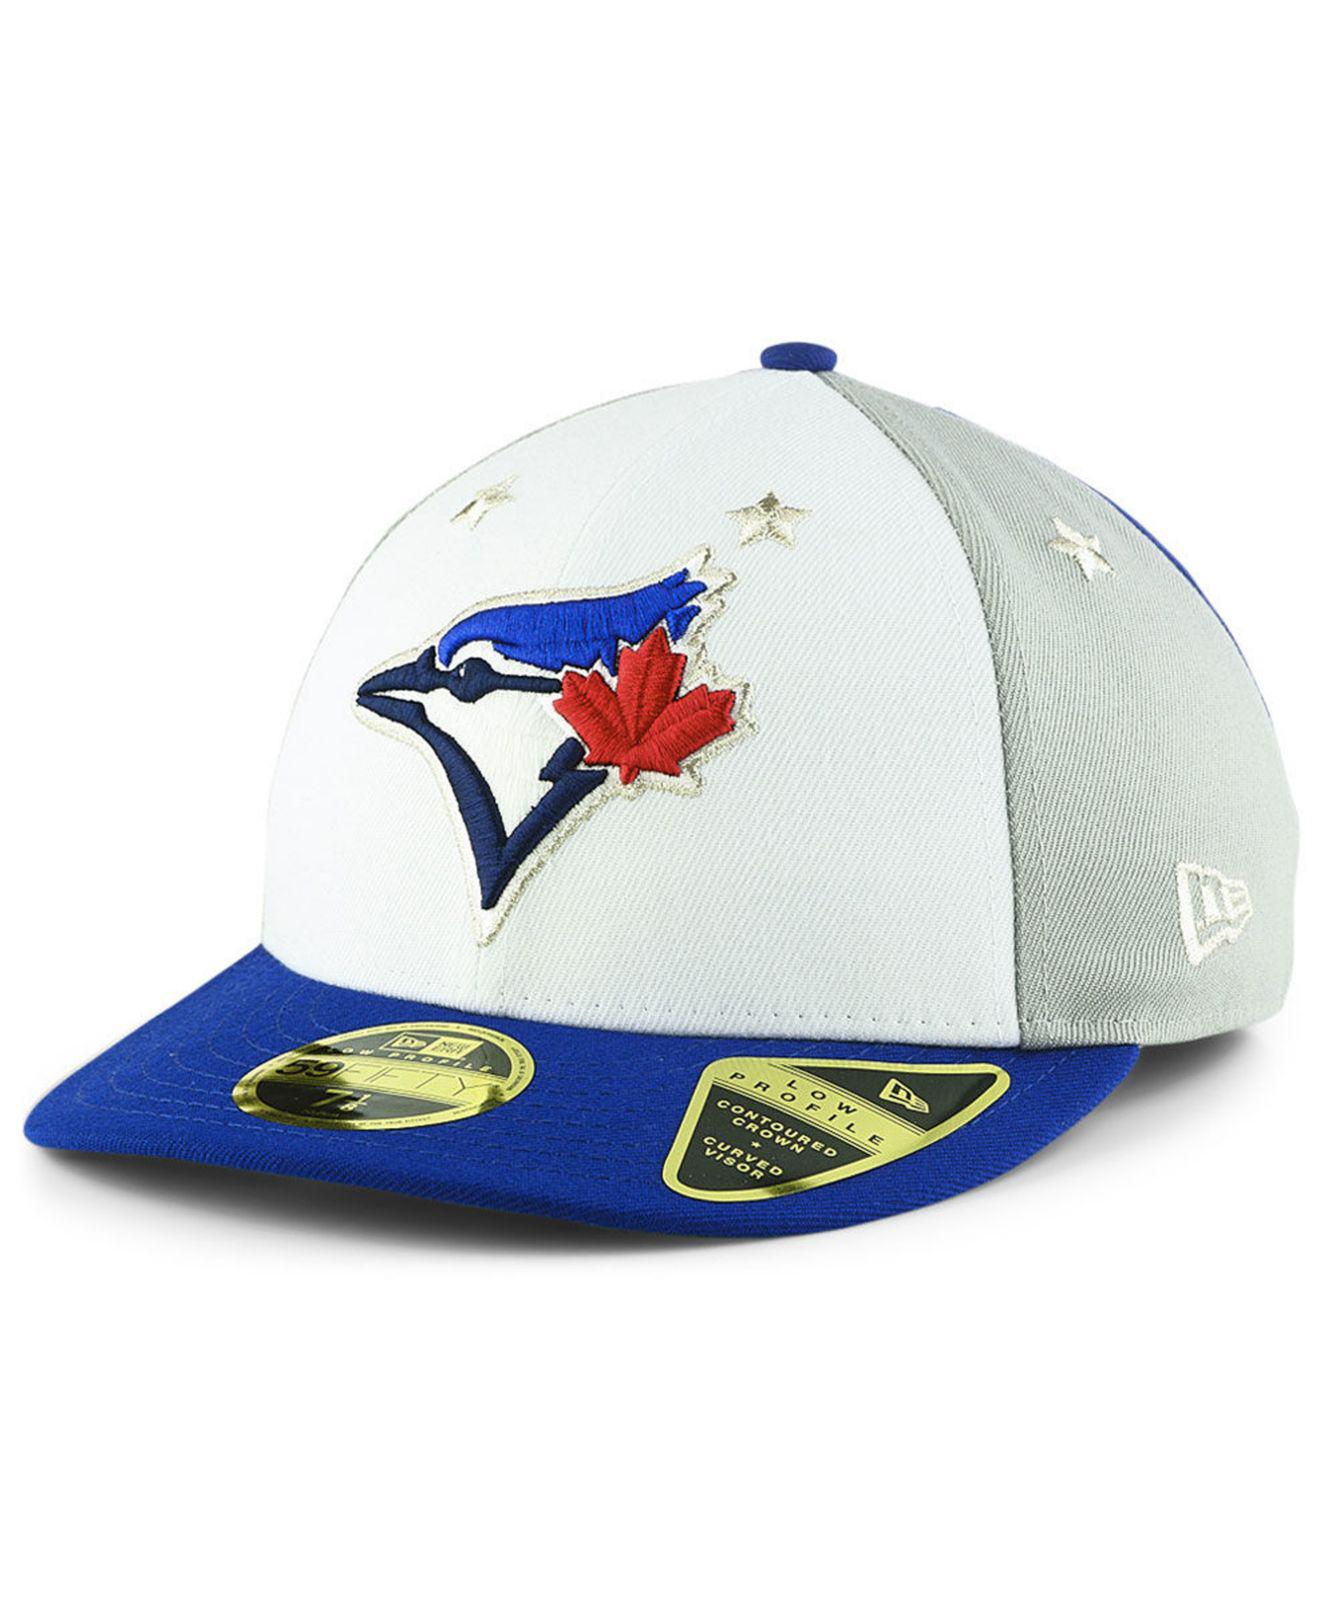 26717d10527 Lyst - KTZ Toronto Blue Jays All Star Game Patch Low Profile 59fifty ...